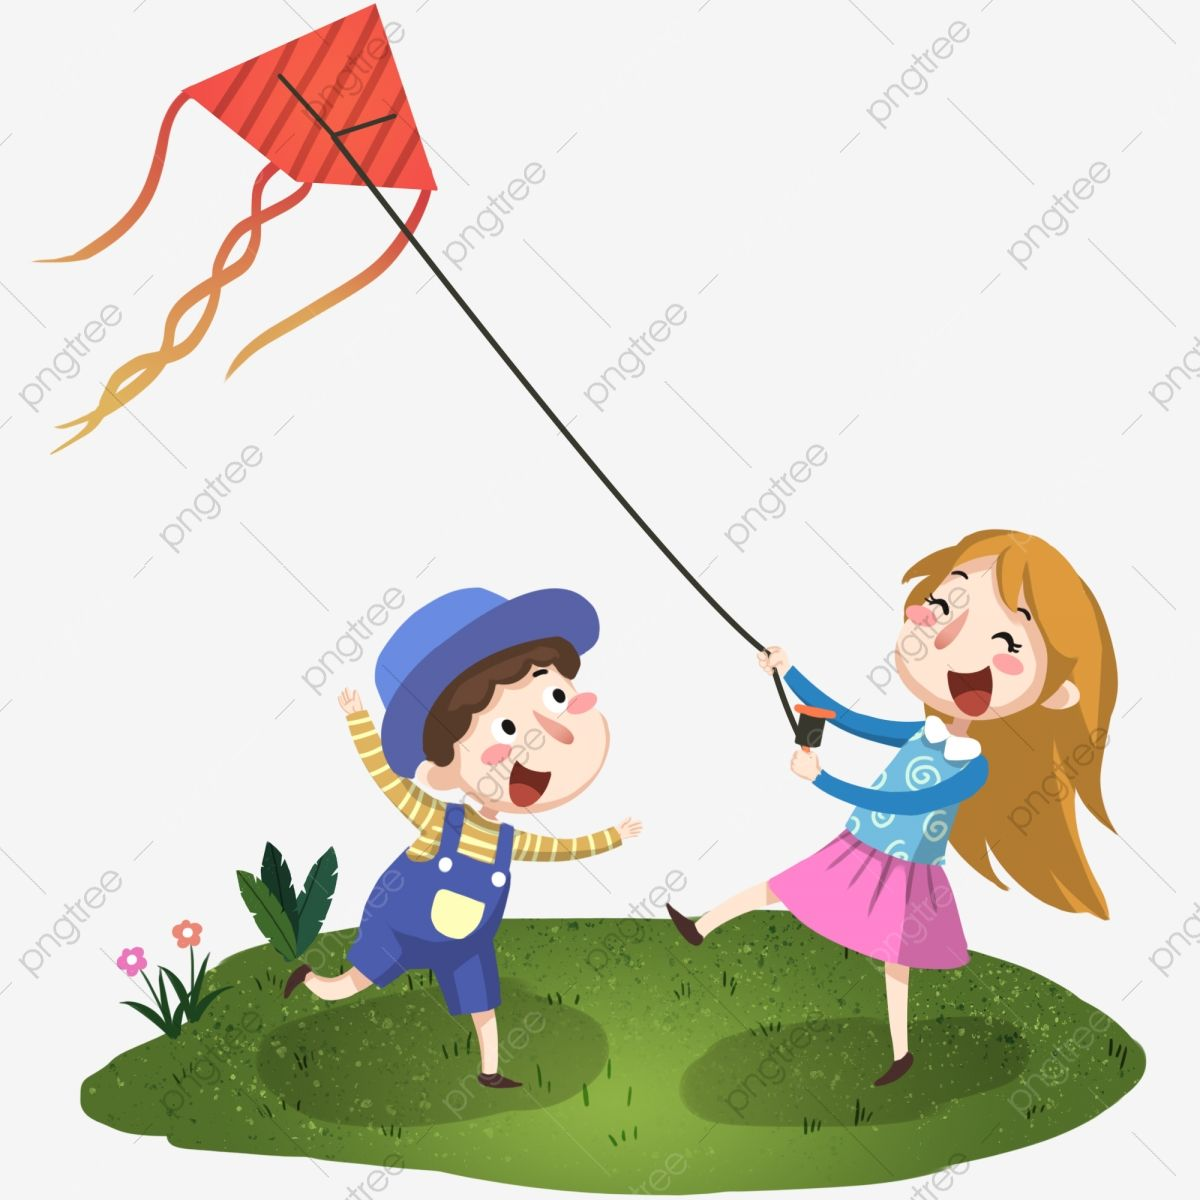 Happy Kids Brothers And Sisters Flying Kite Illustration Spring Kite Grass Png Transparent Clipart Image And Psd File For Free Download Happy Kids Kite Kite Flying